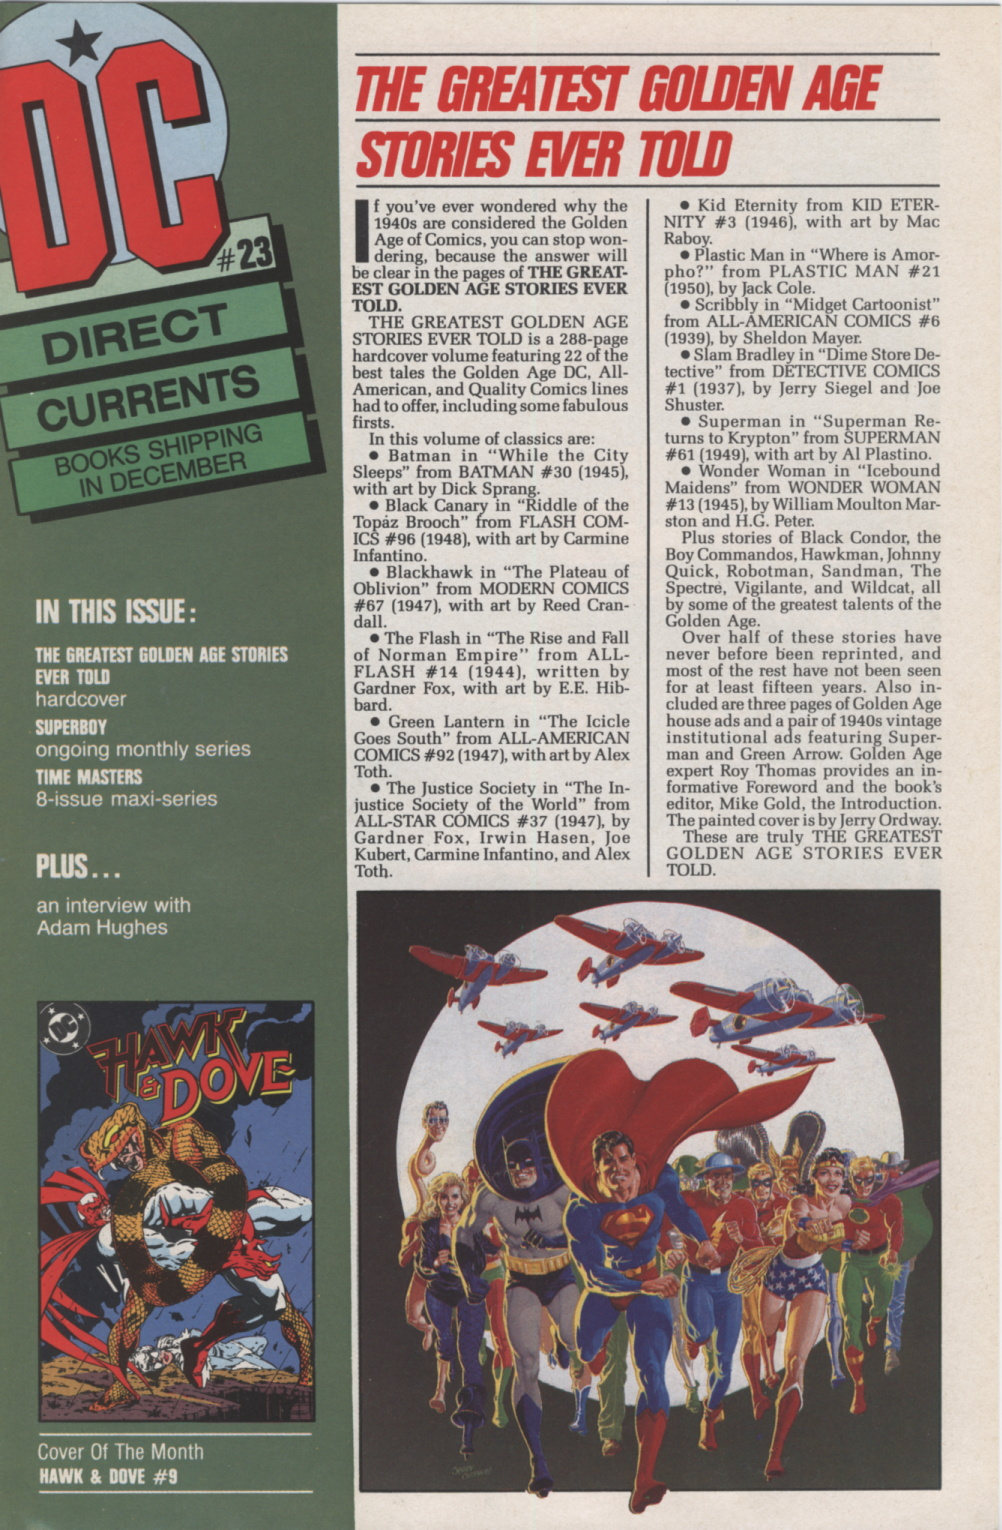 Time Capsule: DC Direct Currents 23 November 1989